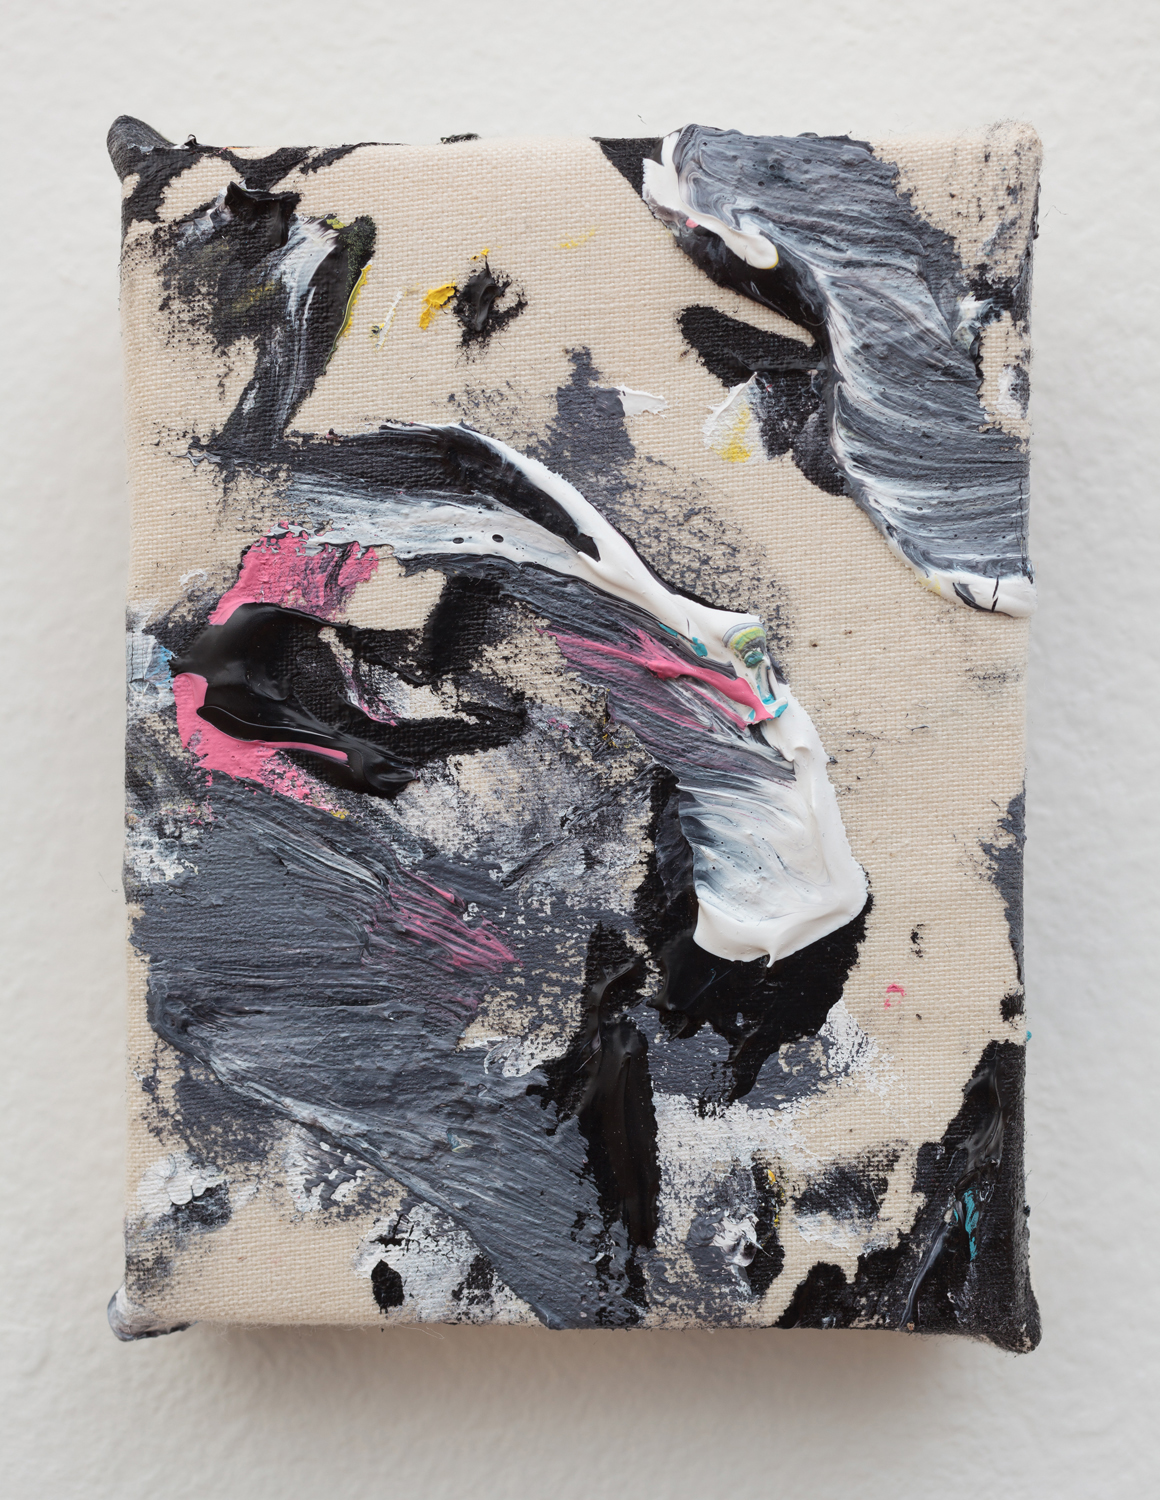 "<p><span class=""name"">Zach Reini</span><br><em>Tiny Painting 5</em><span class='media'>Acrylic on canvas</span>4 x 3 in (10.2 x 7.6 cm)<br>2018<br><a class='inquire' href='mailto:info@gildargallery.com?subject=Artwork Inquiry ZREI0043&body=I am interested in finding out more about Tiny Painting 5 by Zach Reini'>Inquire</a></p>"